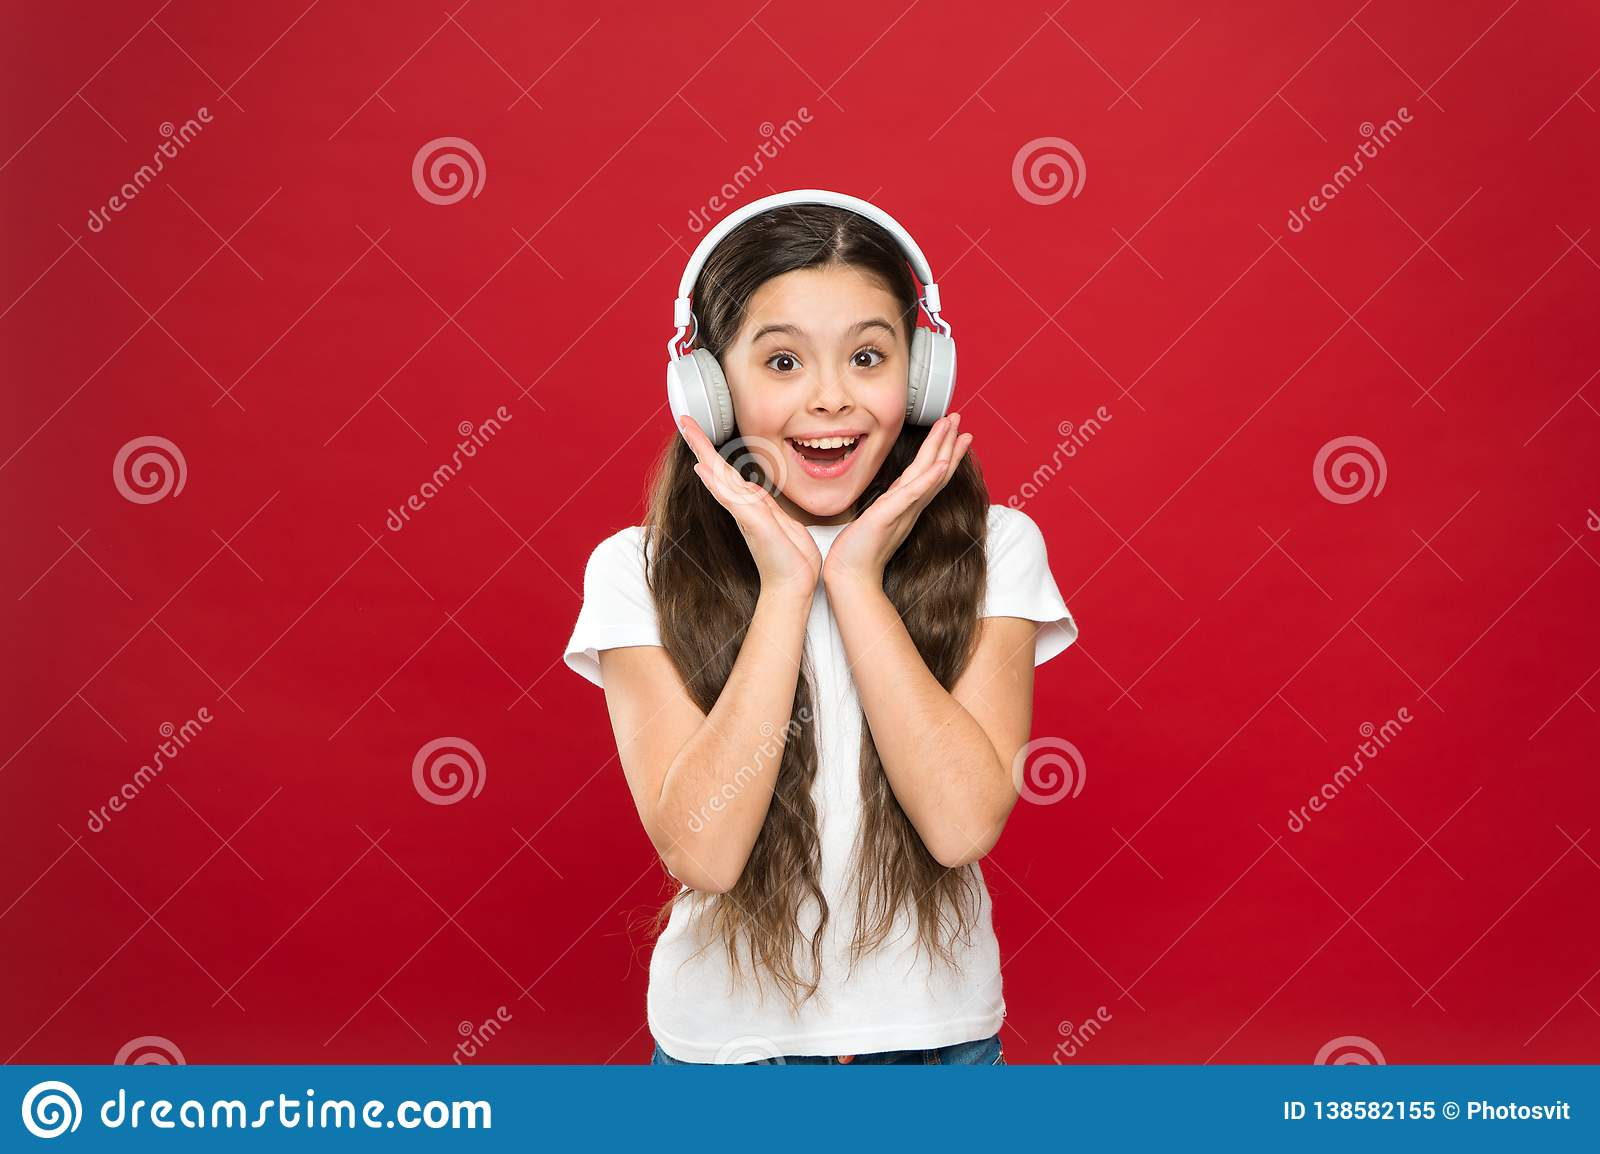 Girl listen music headphones on red background. Play list concept. Music taste. Music plays an important part lives